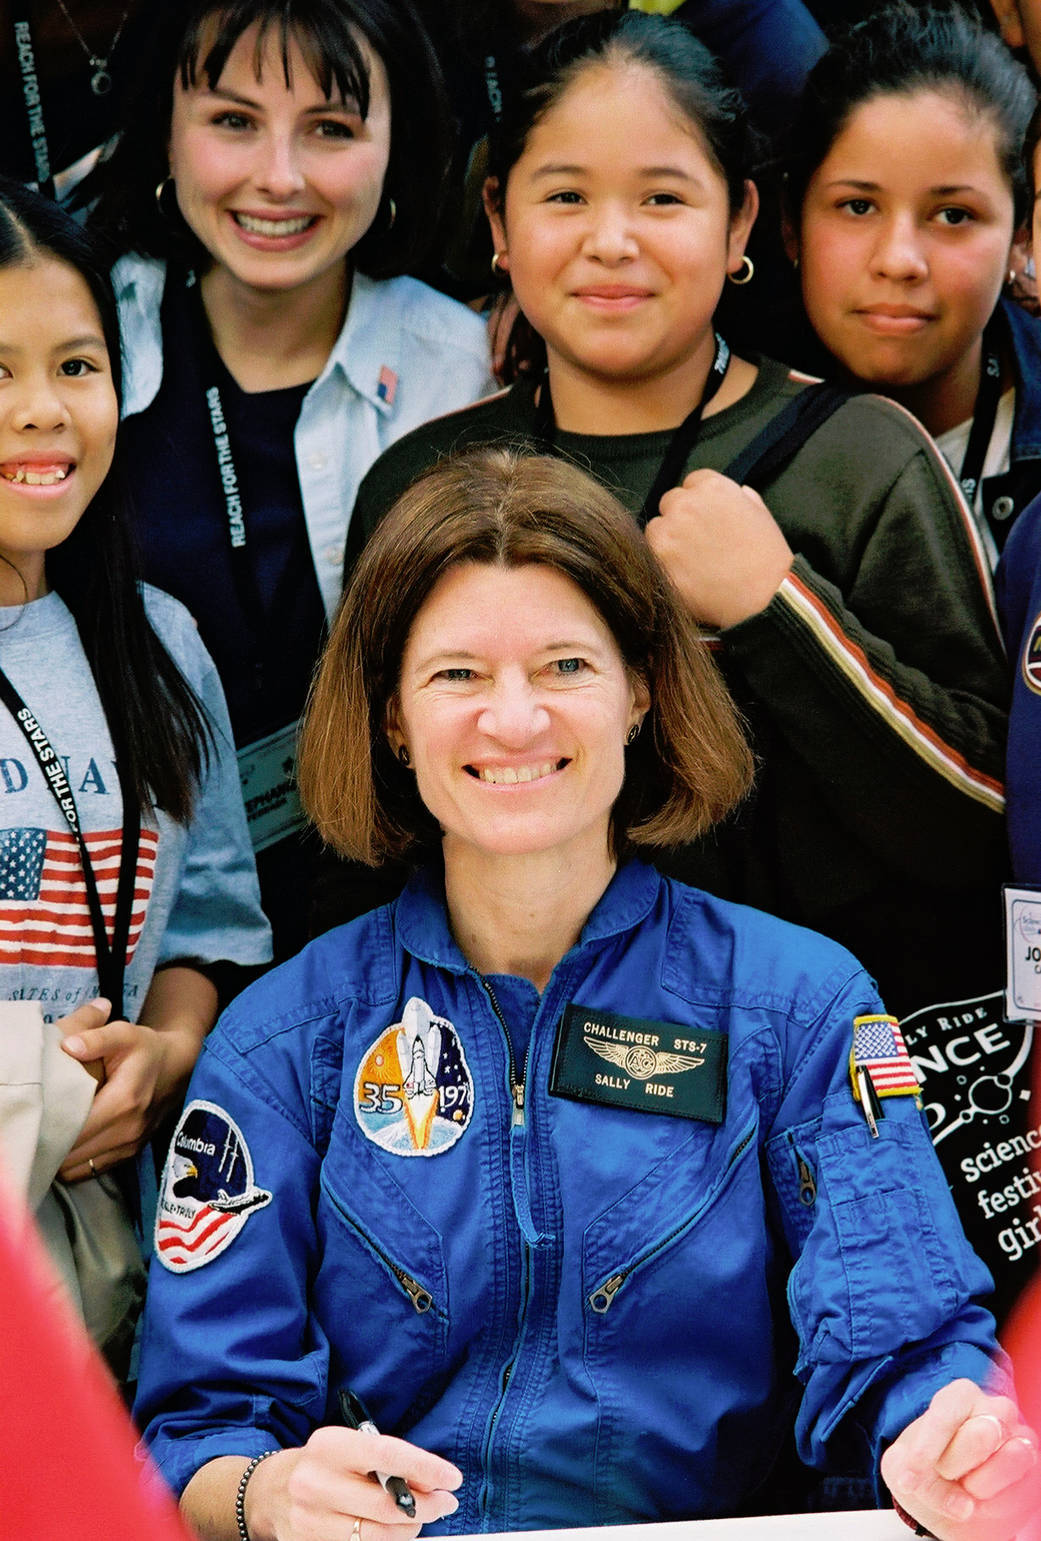 Color image of woman astronaut surrounded by kids.